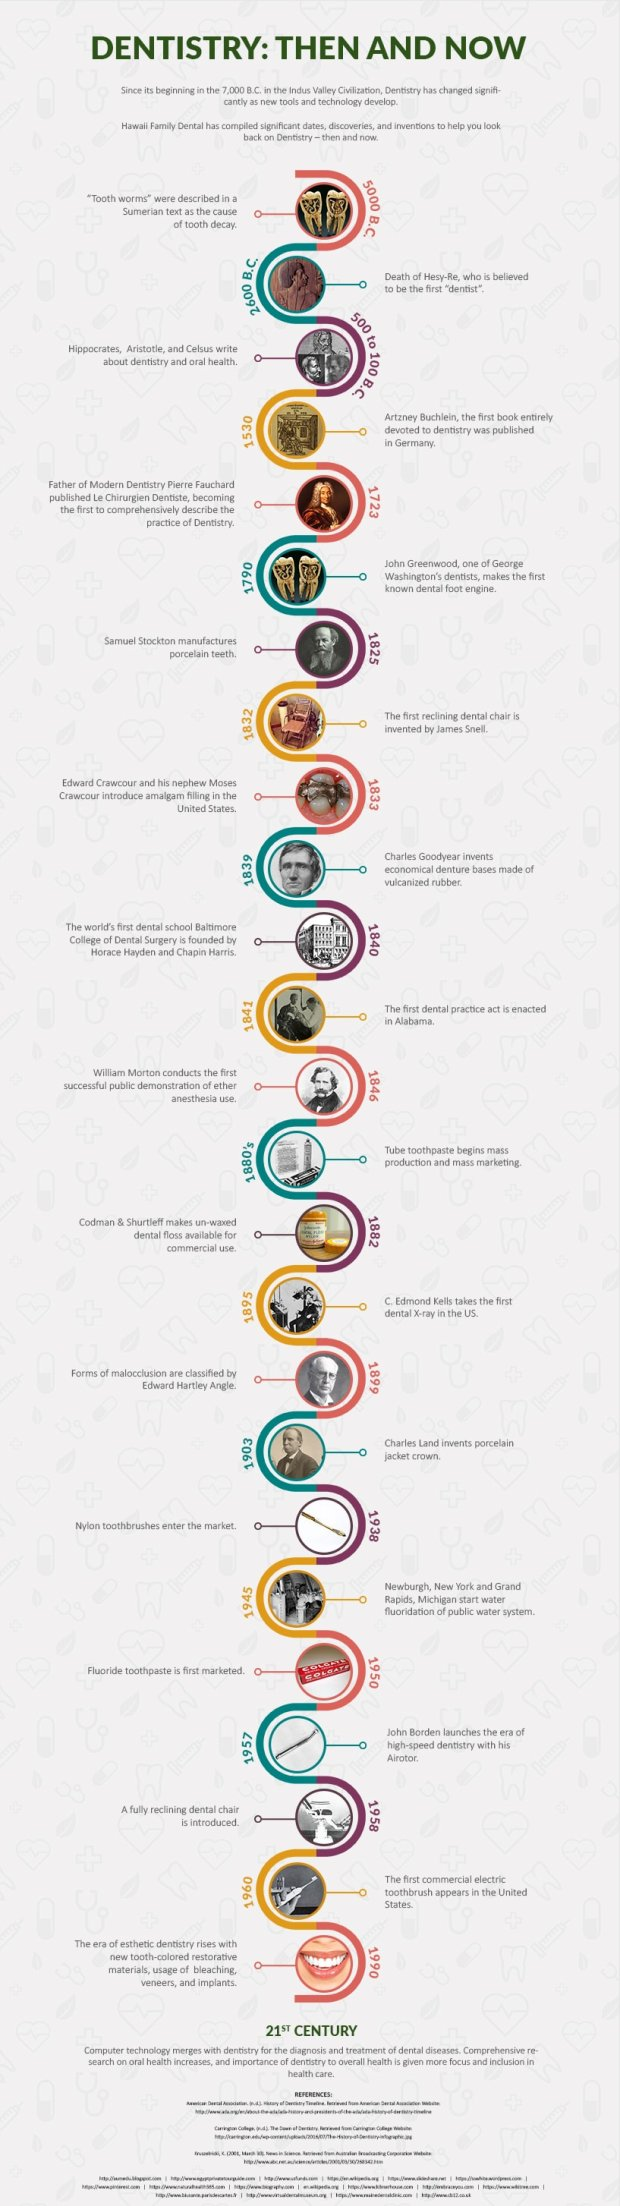 history-of-dentistry-then-and-now-infographic.jpg